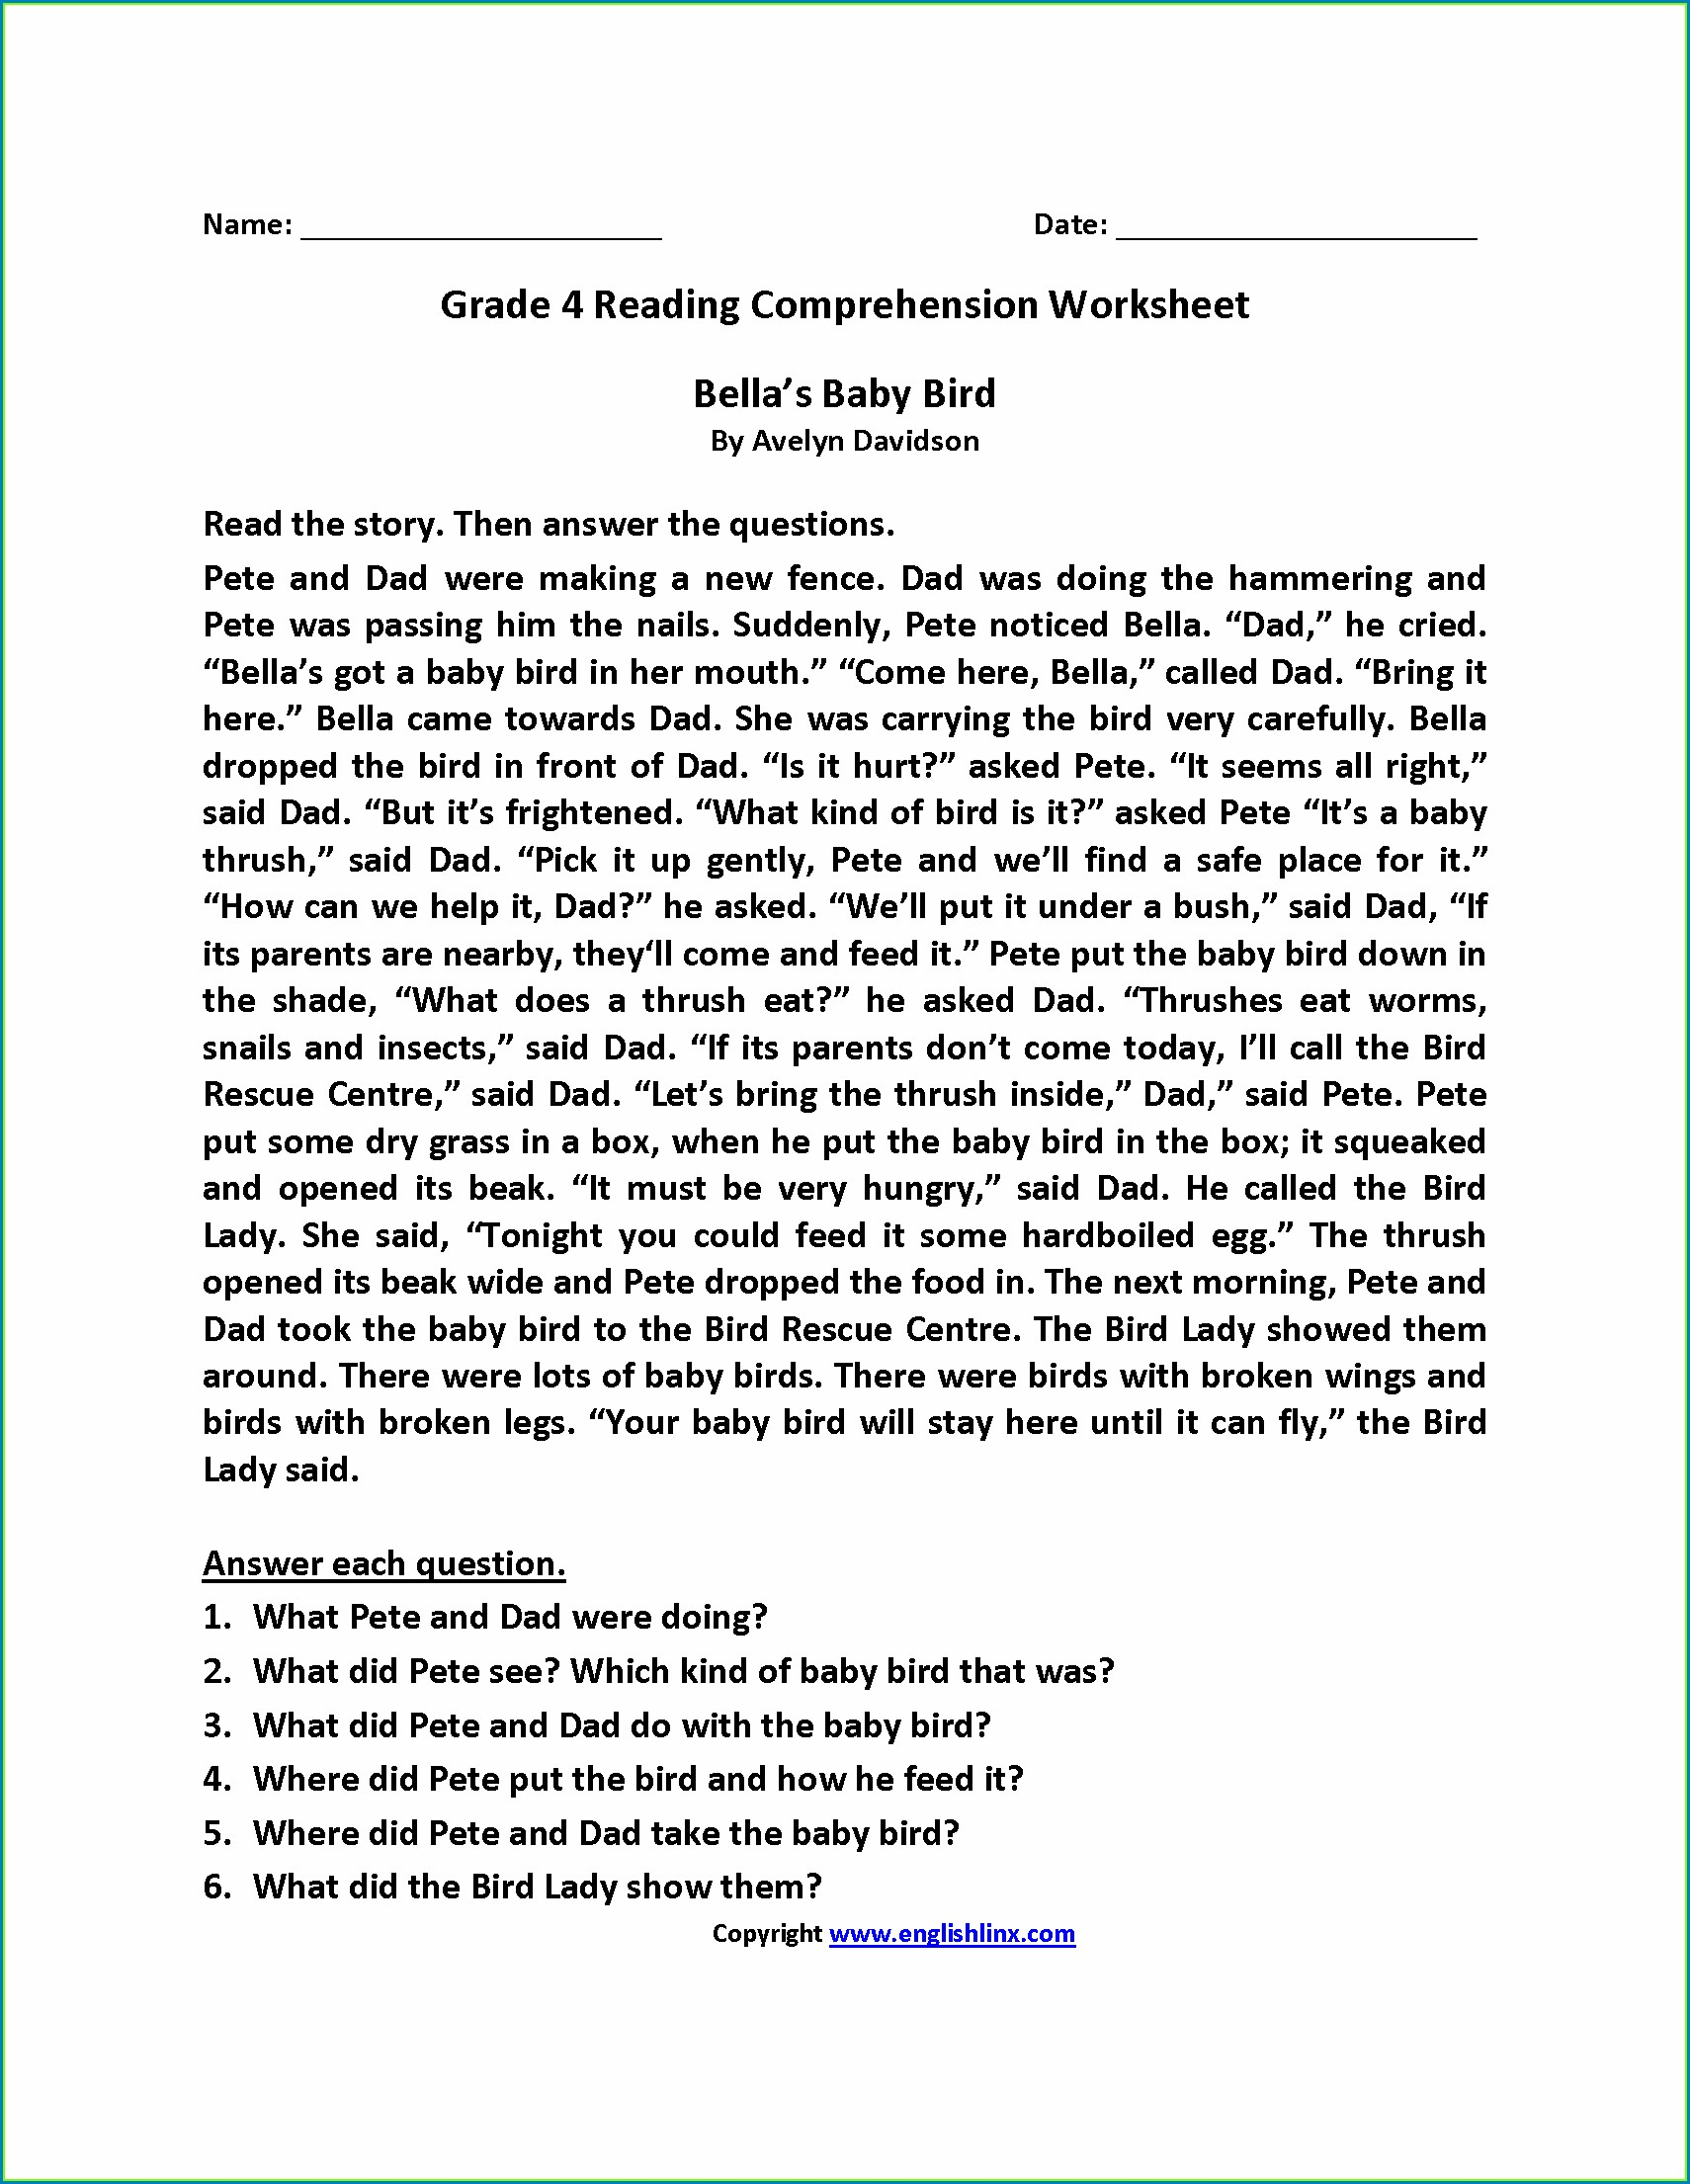 4th Grade English Comprehension Worksheets For Grade 3 Pdf